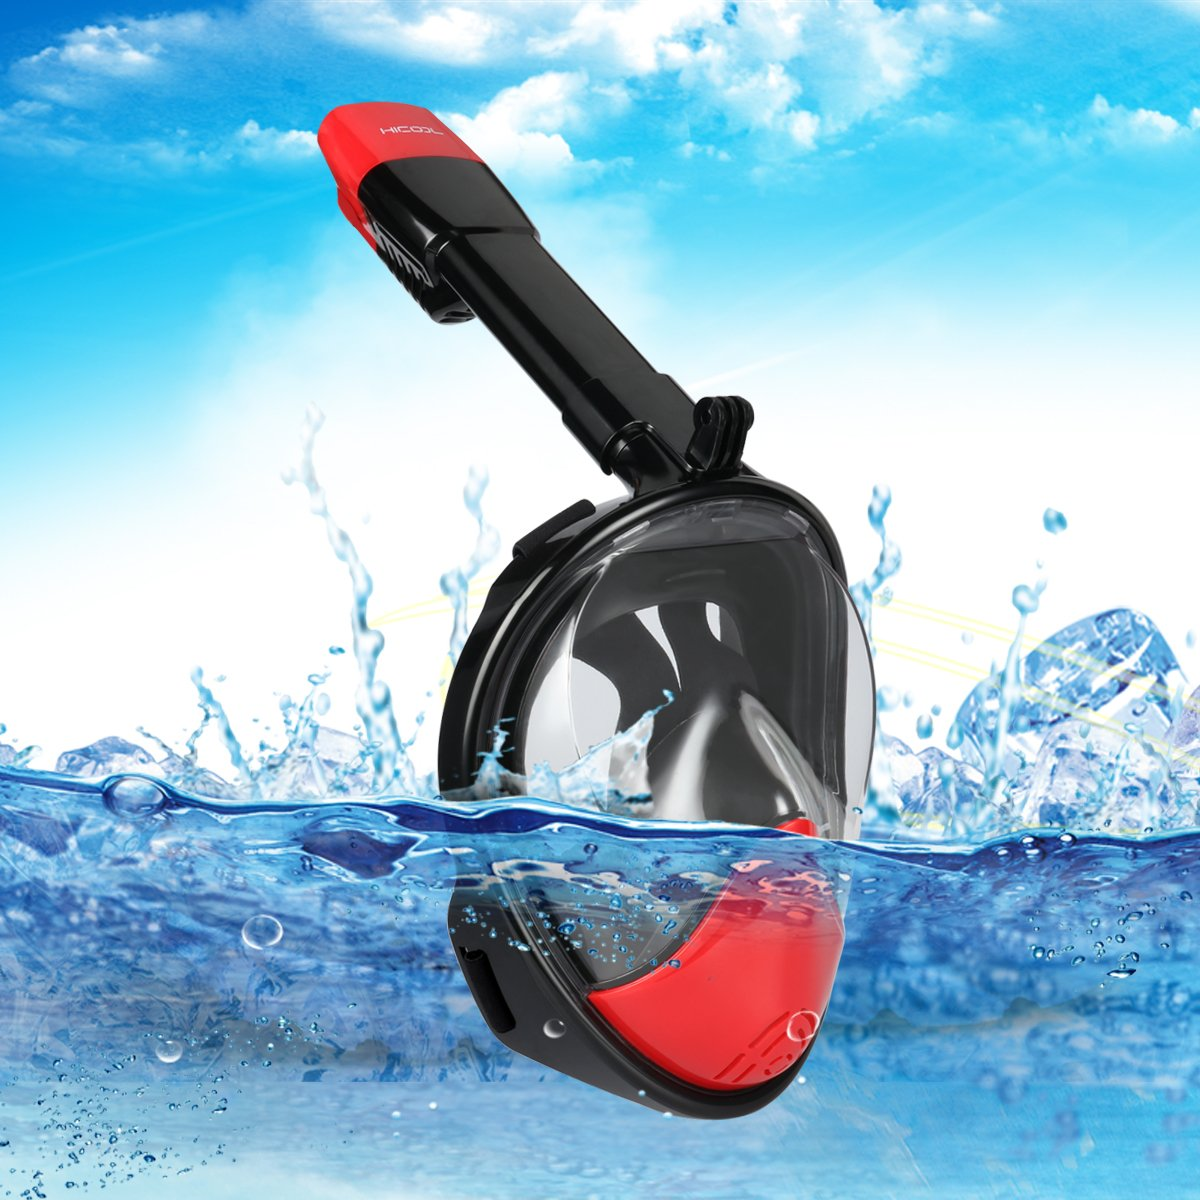 Snorkeling Mask for Adults HiCool 180 Degree Larger Flat Viewing Snorkeling Diving Mask with Detachable GoPro Mount (Gopro Compatible) and Longer Ventilation Pipe for Anti Fog and Anti Leak